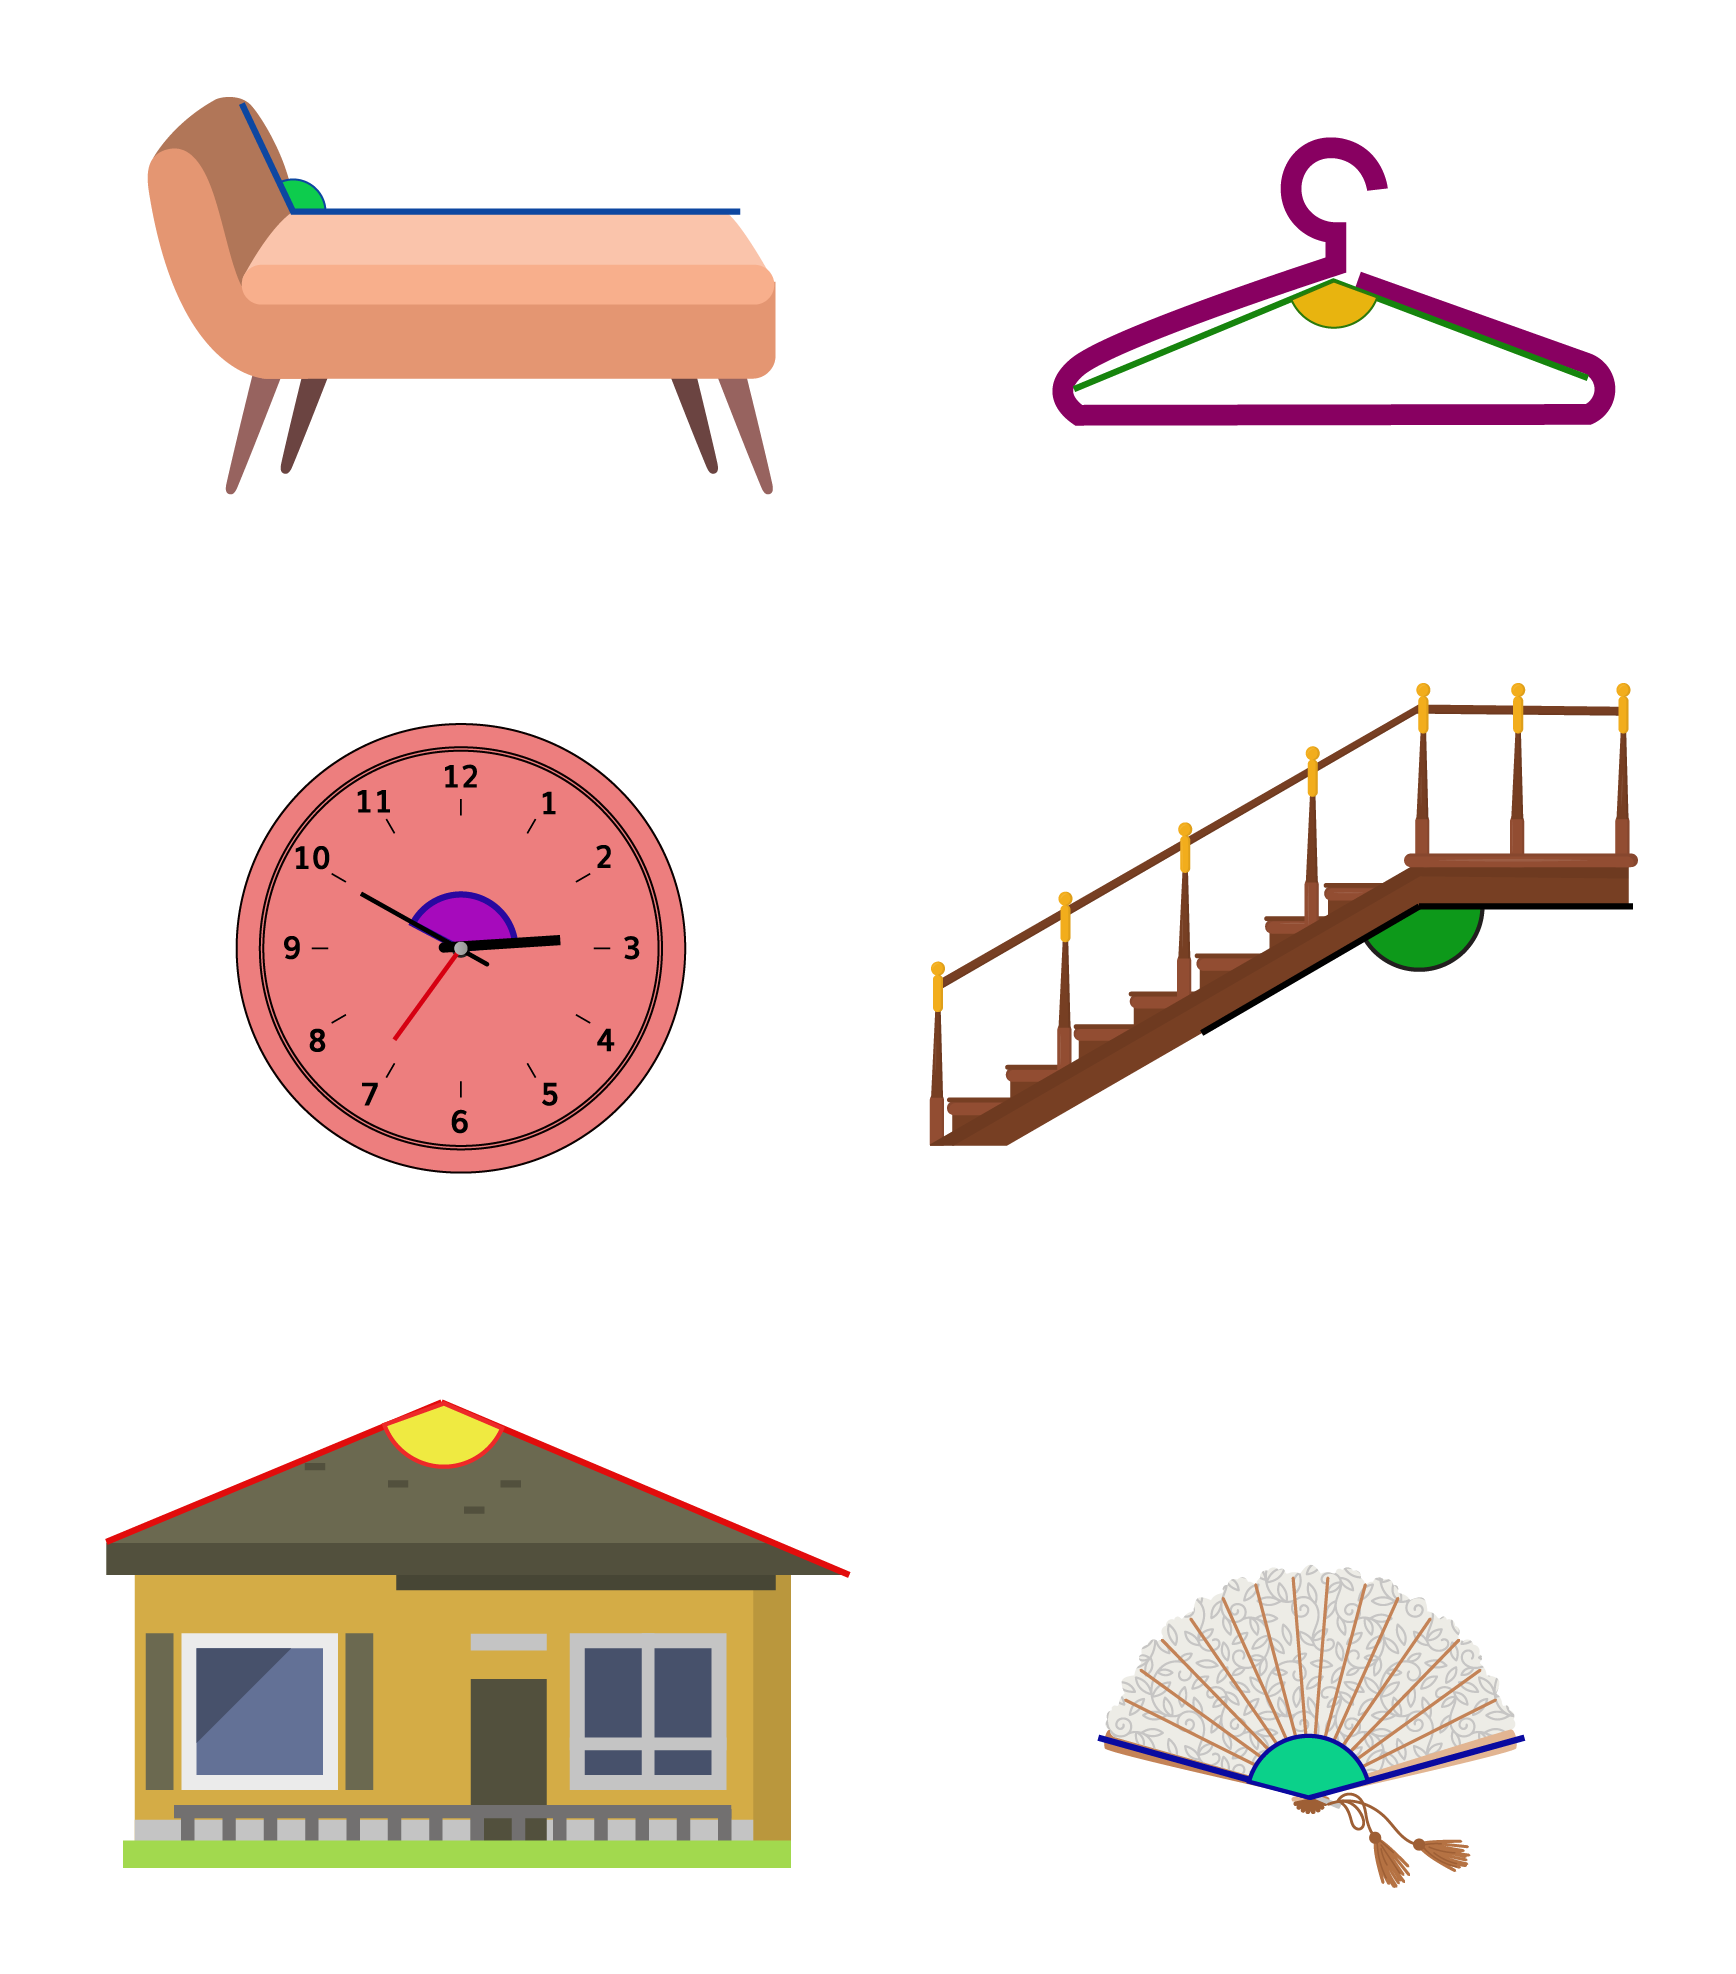 Real life obtuse angle examples: A sofa, a staircase, a roof, a wall clock, a hand fan, a cloth hanger